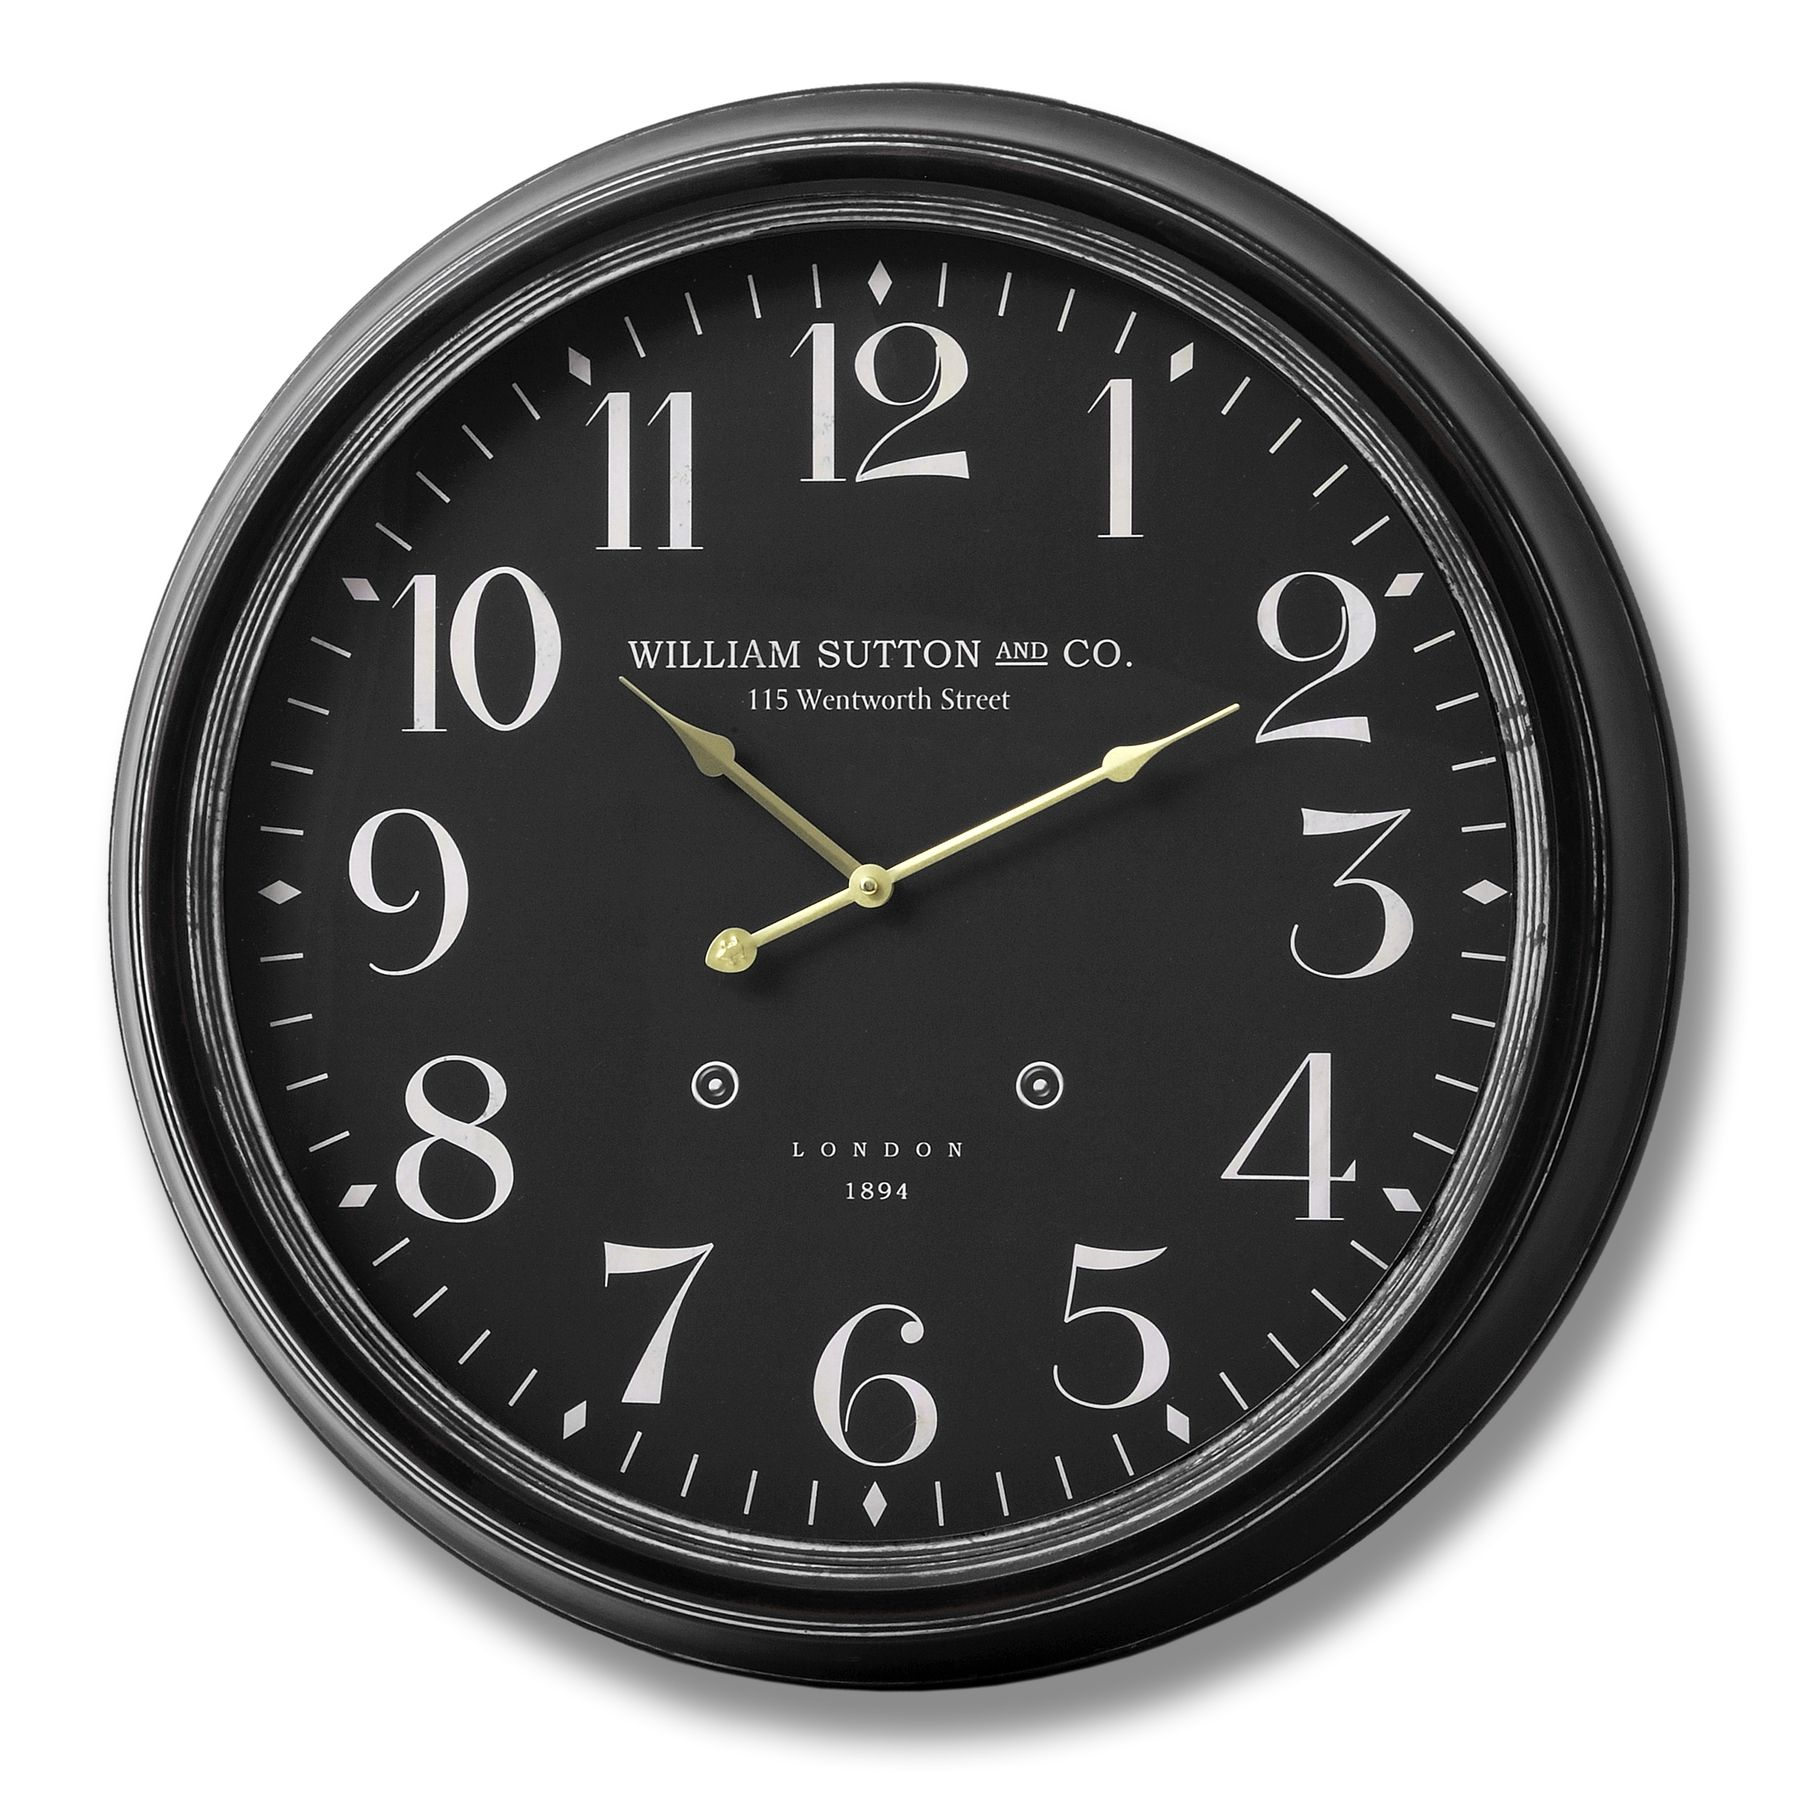 William sutton and co large glass faced wall clock clocks william sutton and co large glass faced wall clock amipublicfo Images